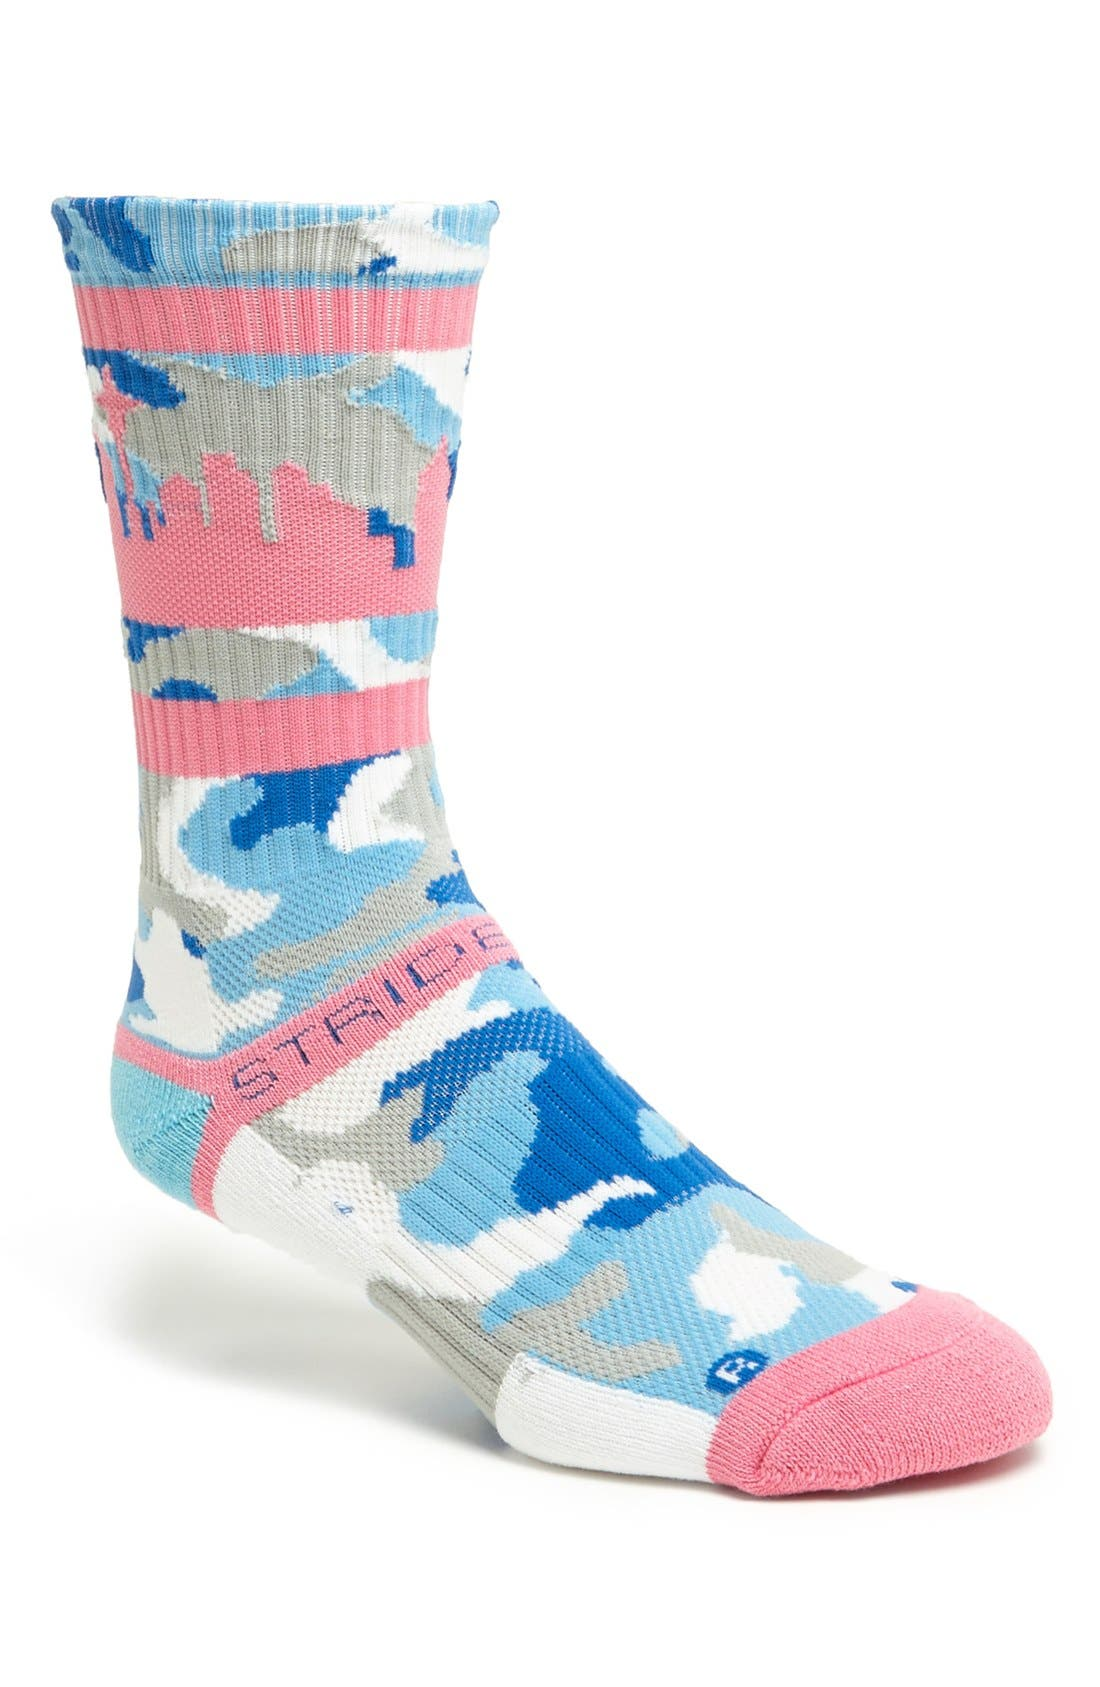 Alternate Image 1 Selected - STRIDELINE 'Seattle' Socks